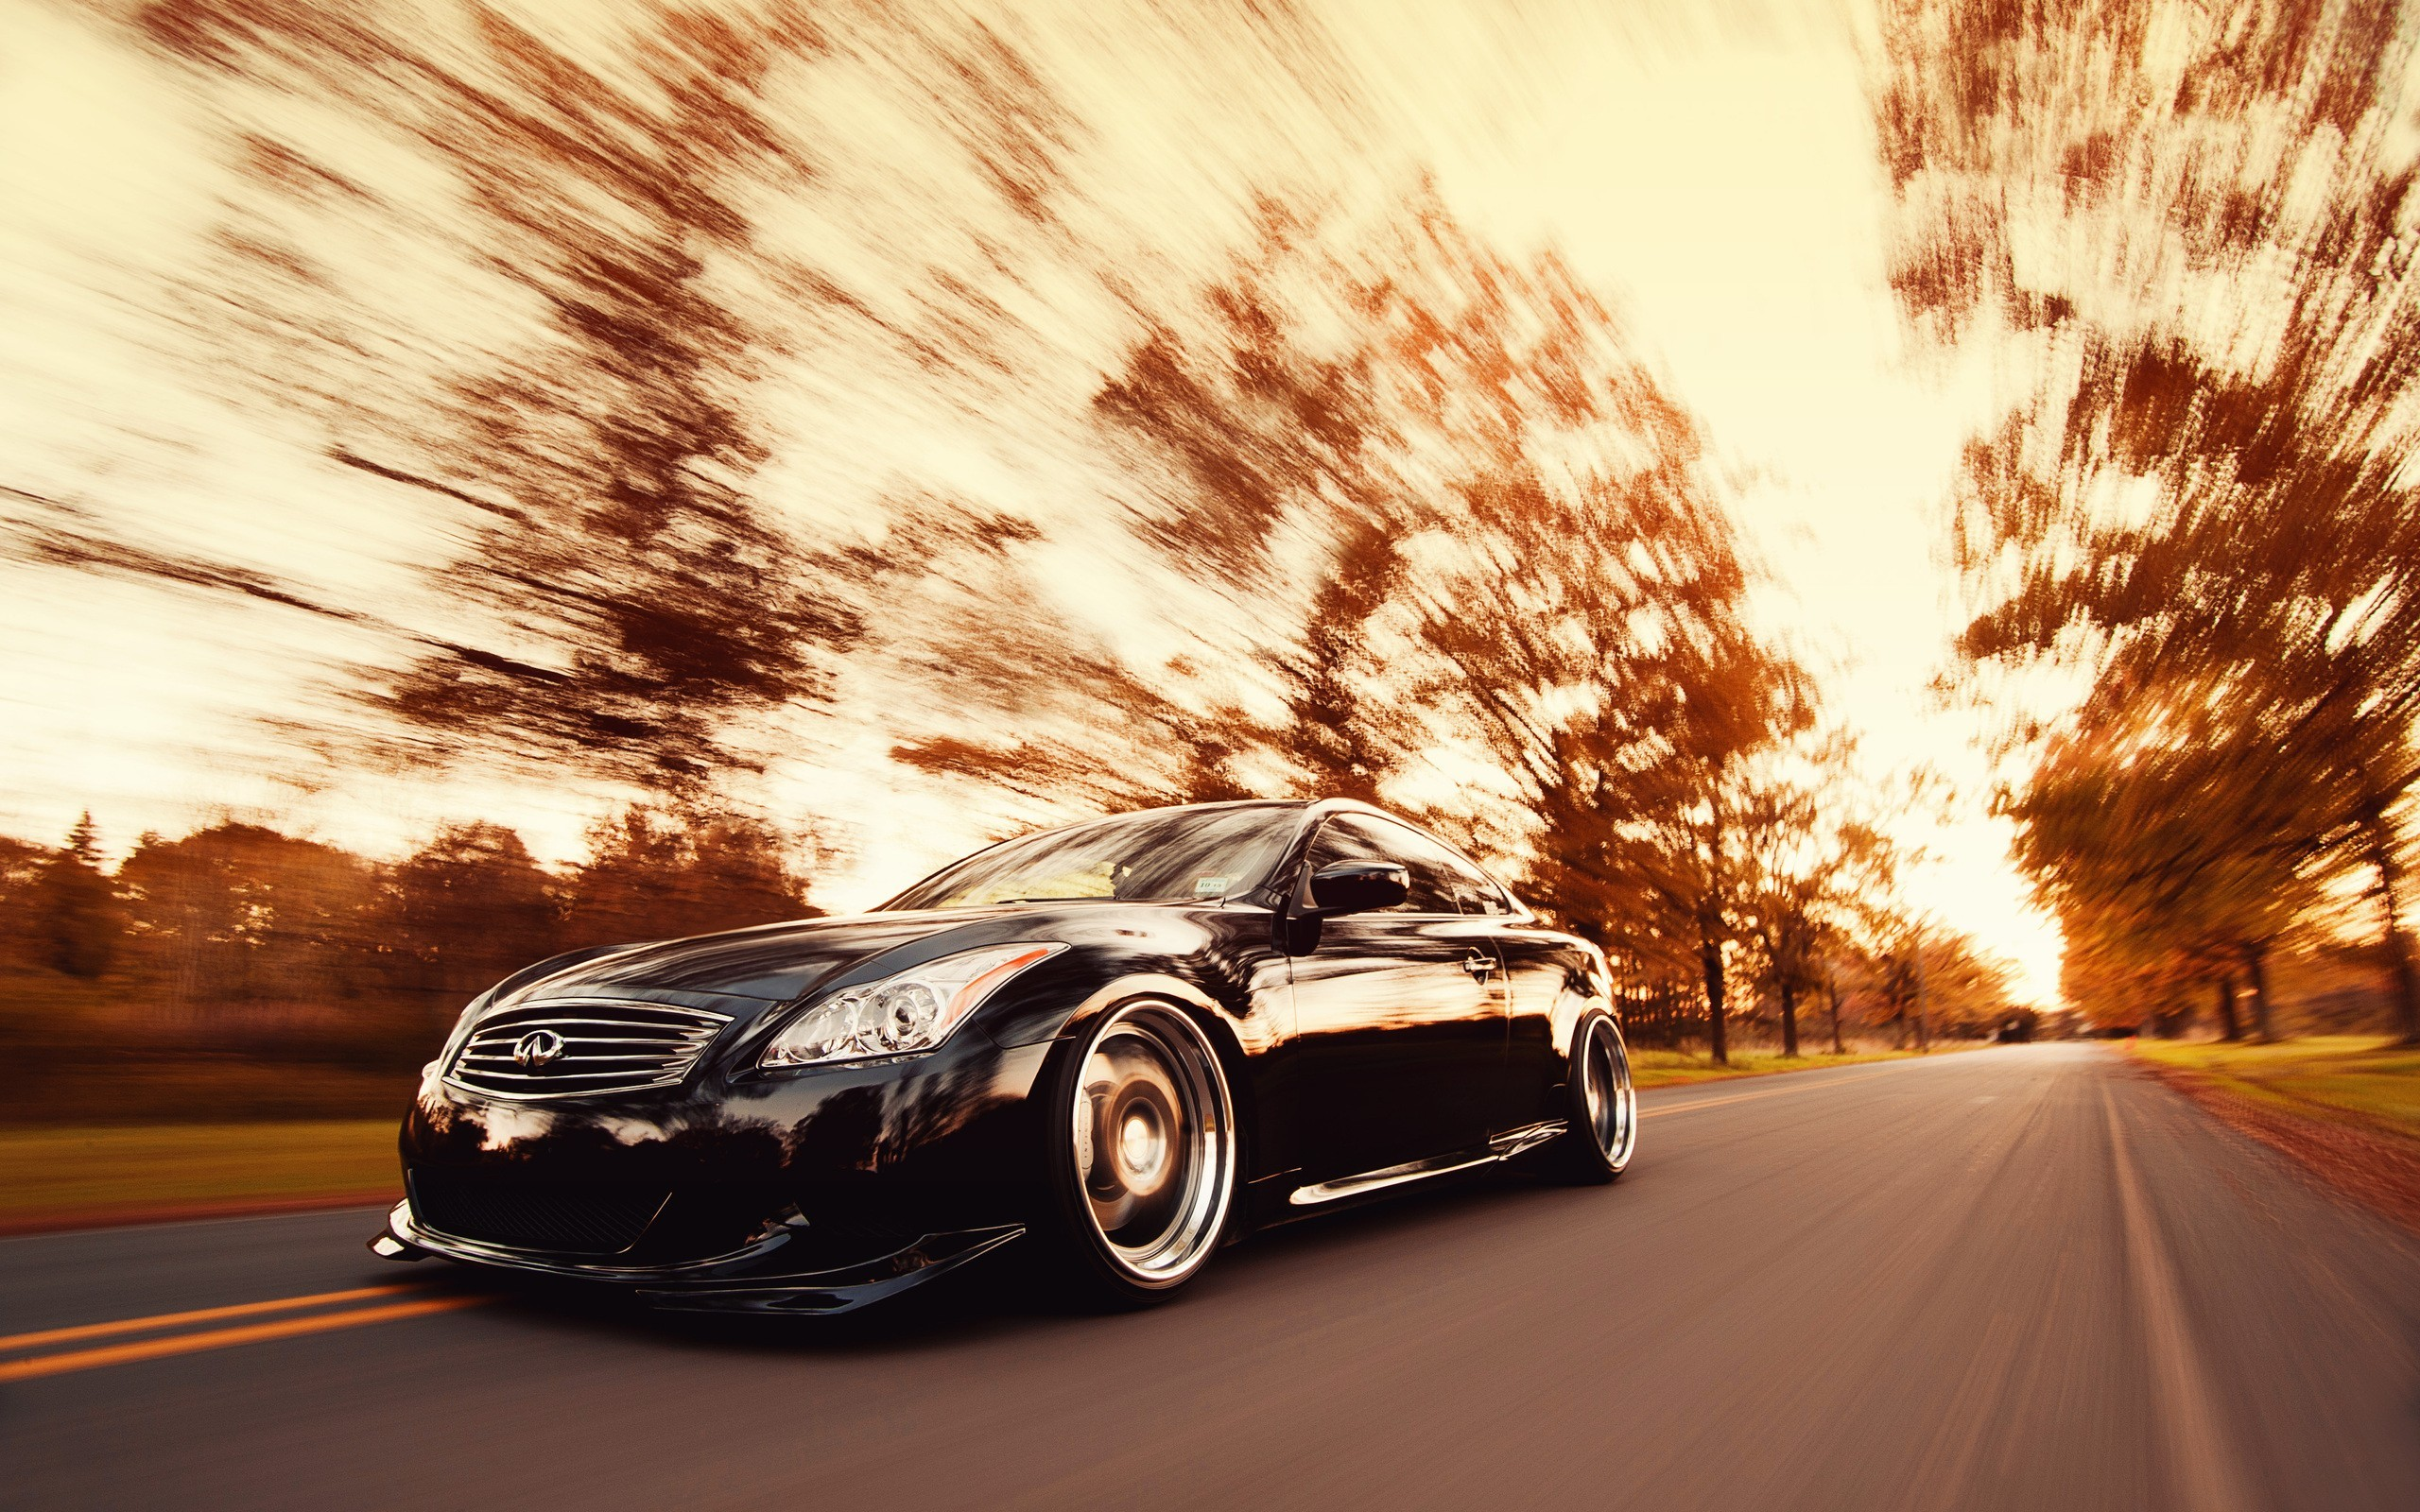 Res: 2560x1600, G37 Stance Wallpaper